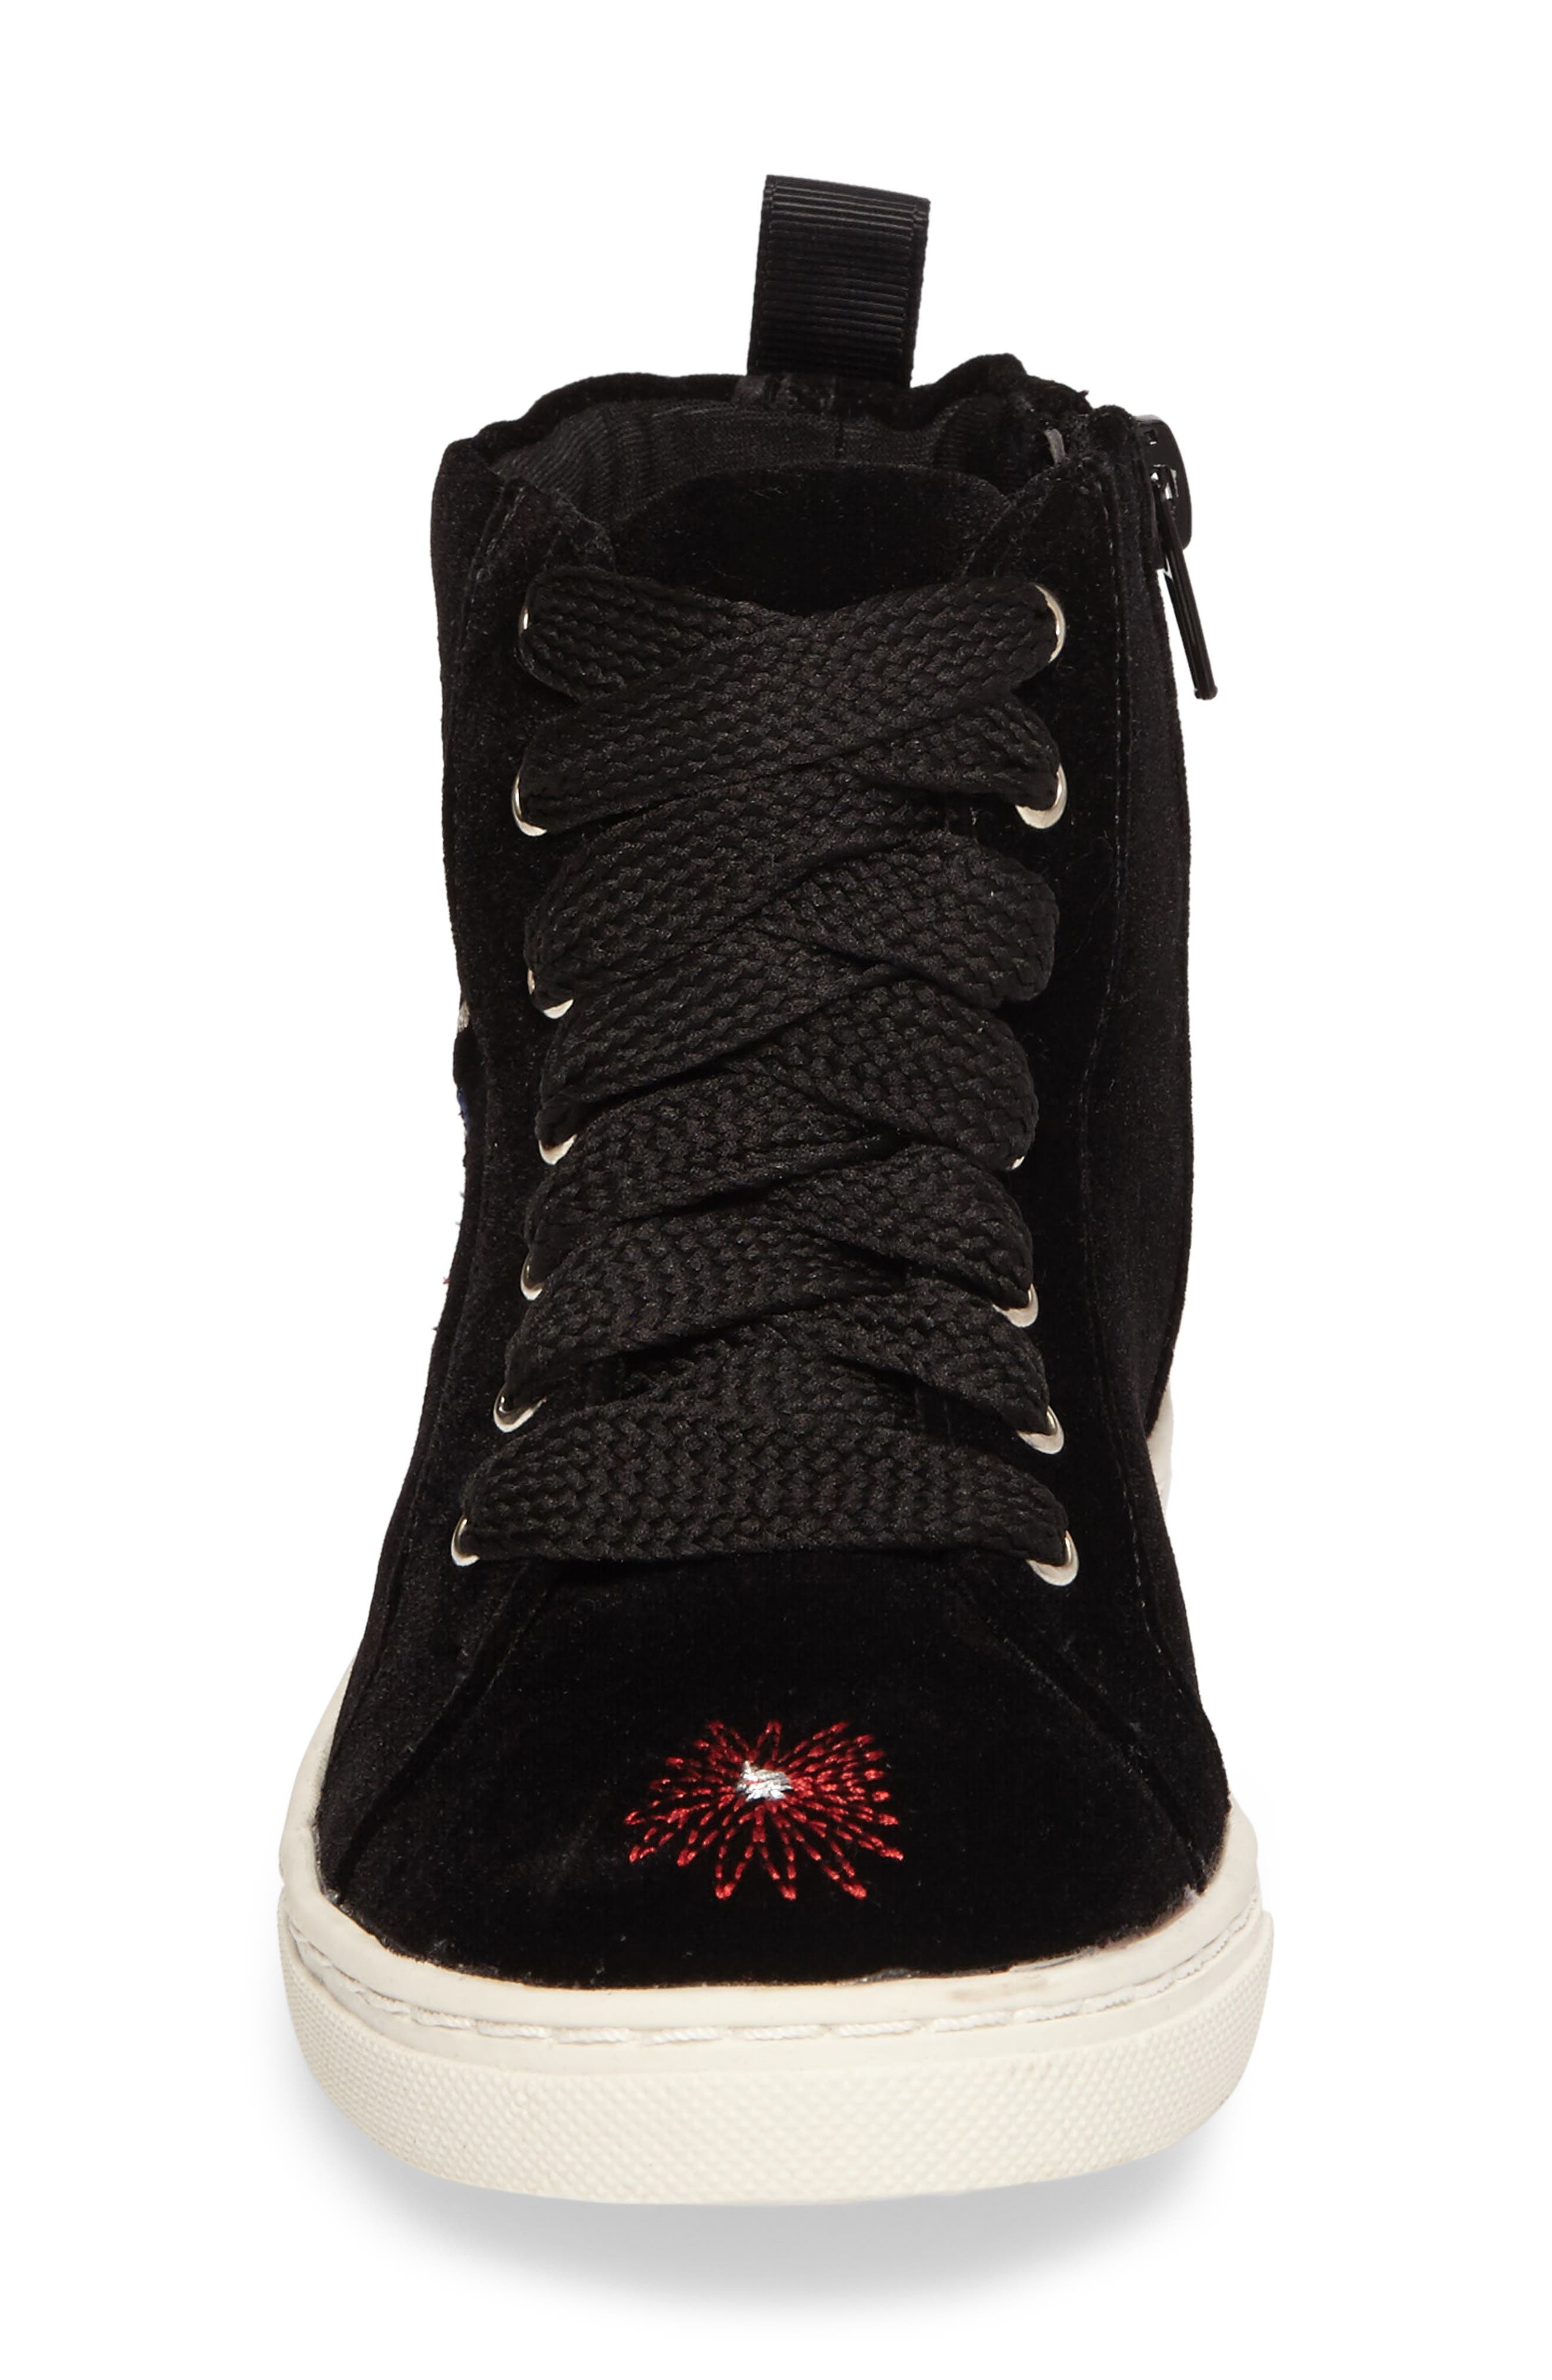 Zowen Embroidered High Top Sneaker,                             Alternate thumbnail 4, color,                             003